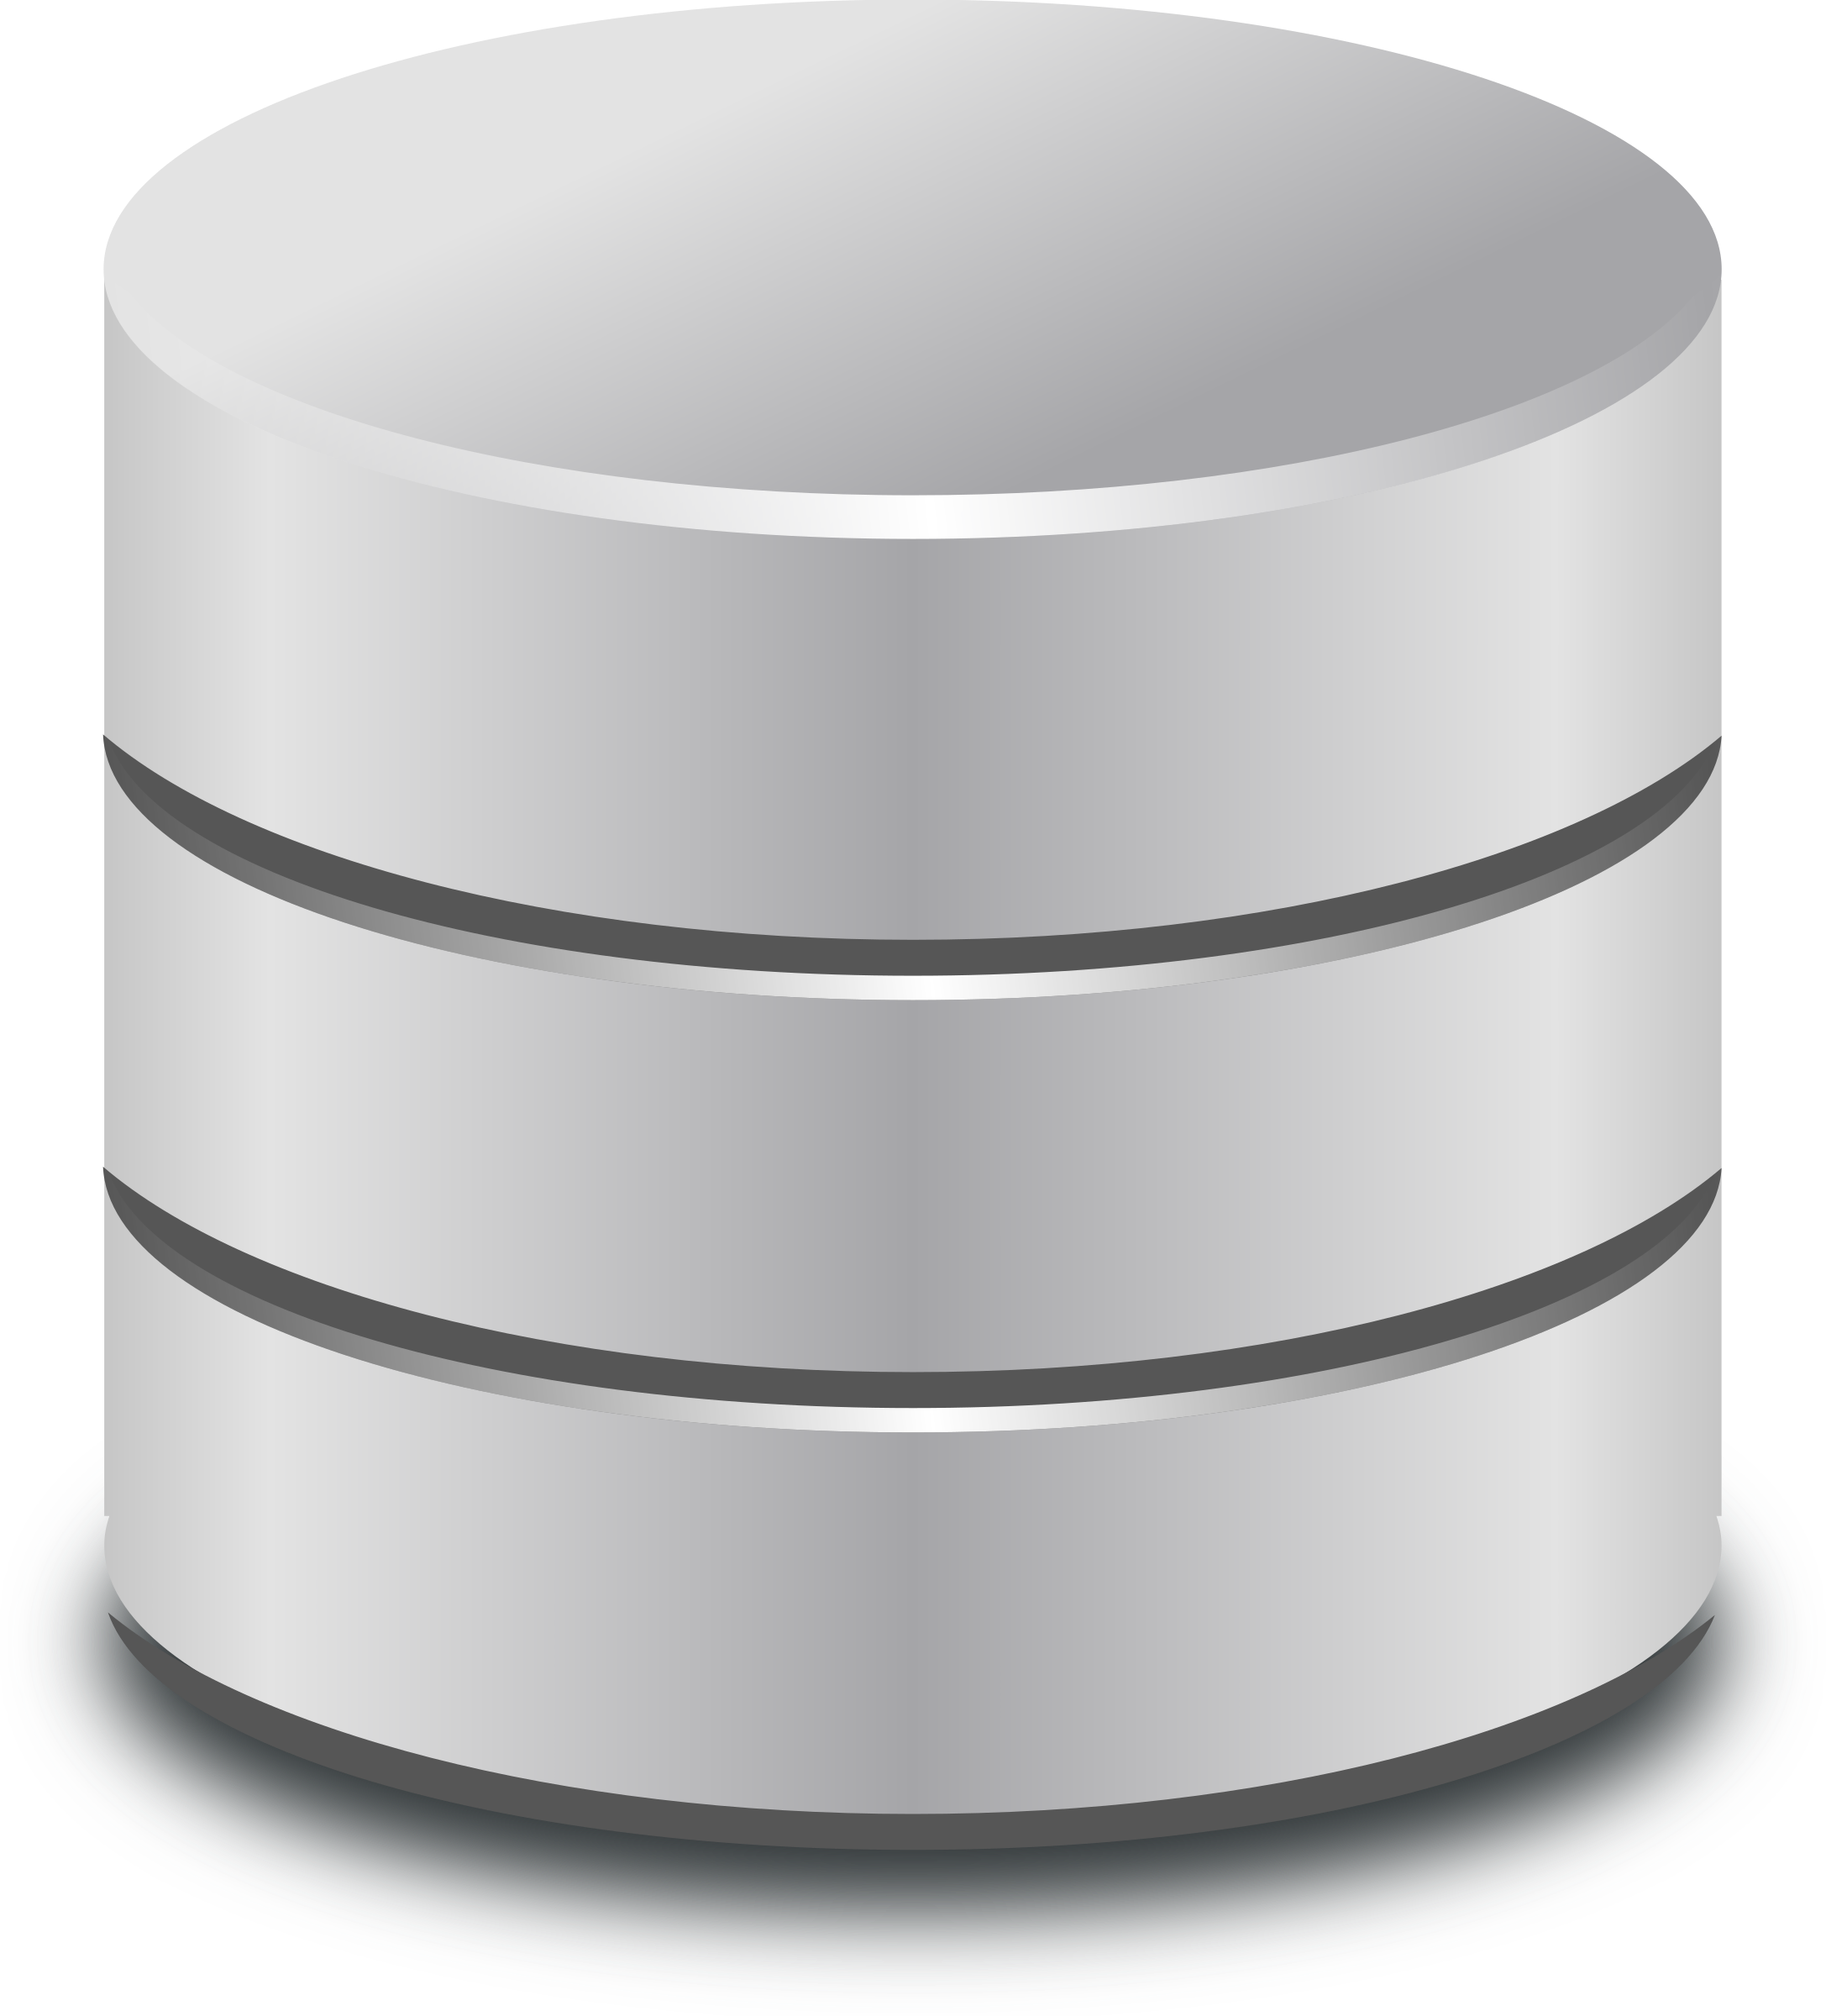 Web Server Clipart Database Icon Pictures